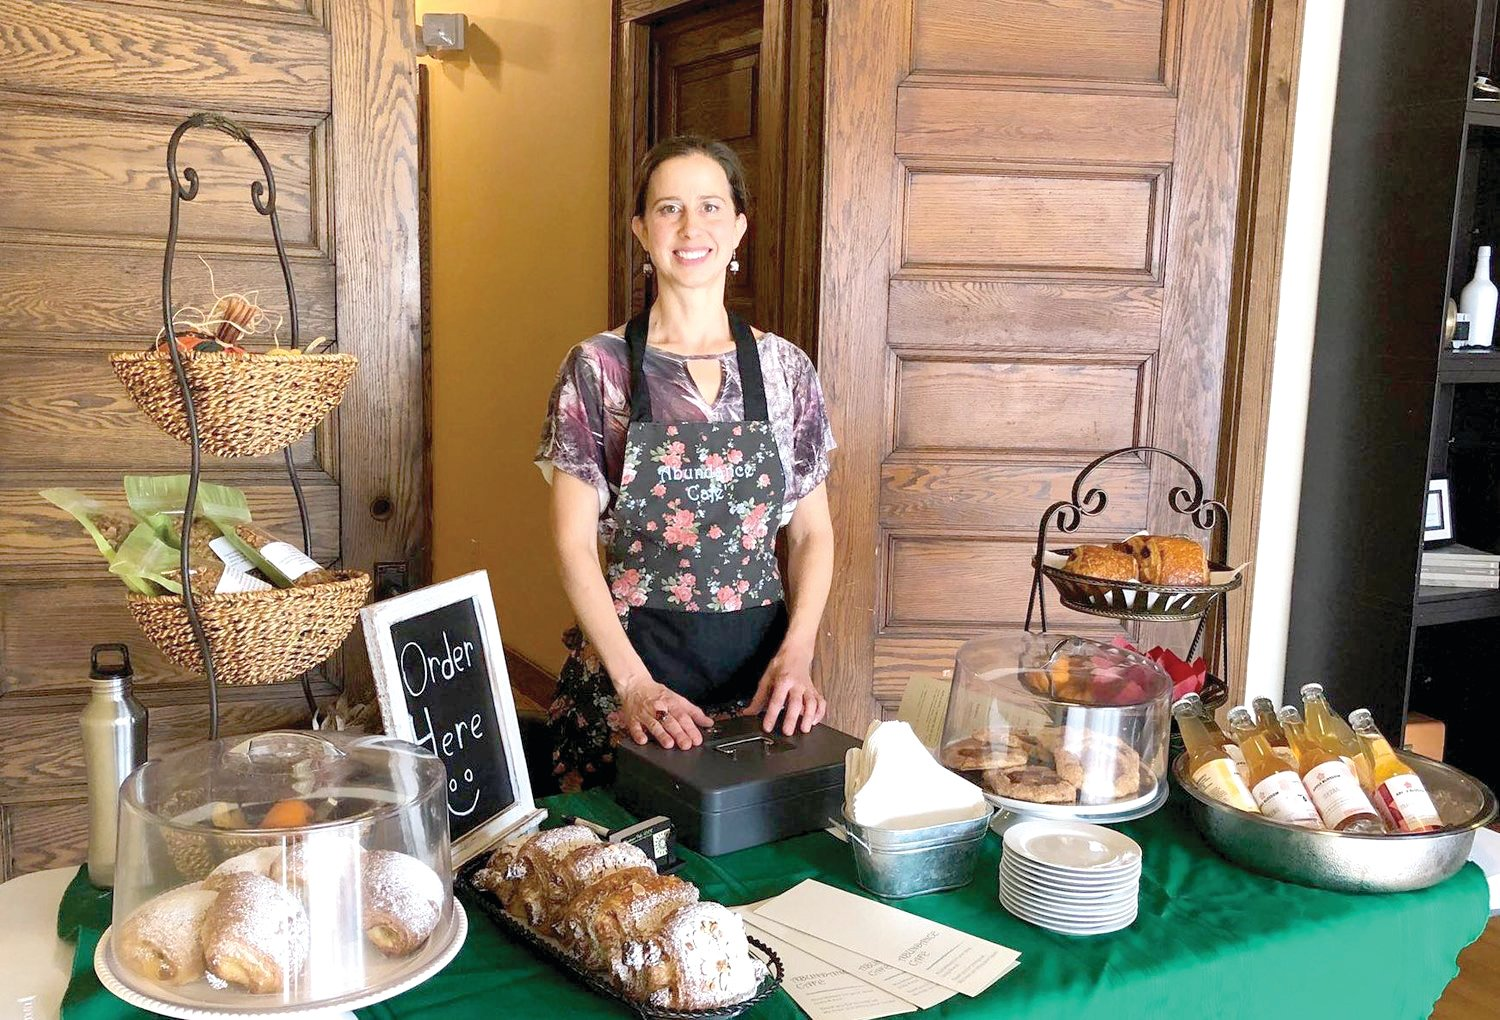 Abundance Café owner Erin Meadows